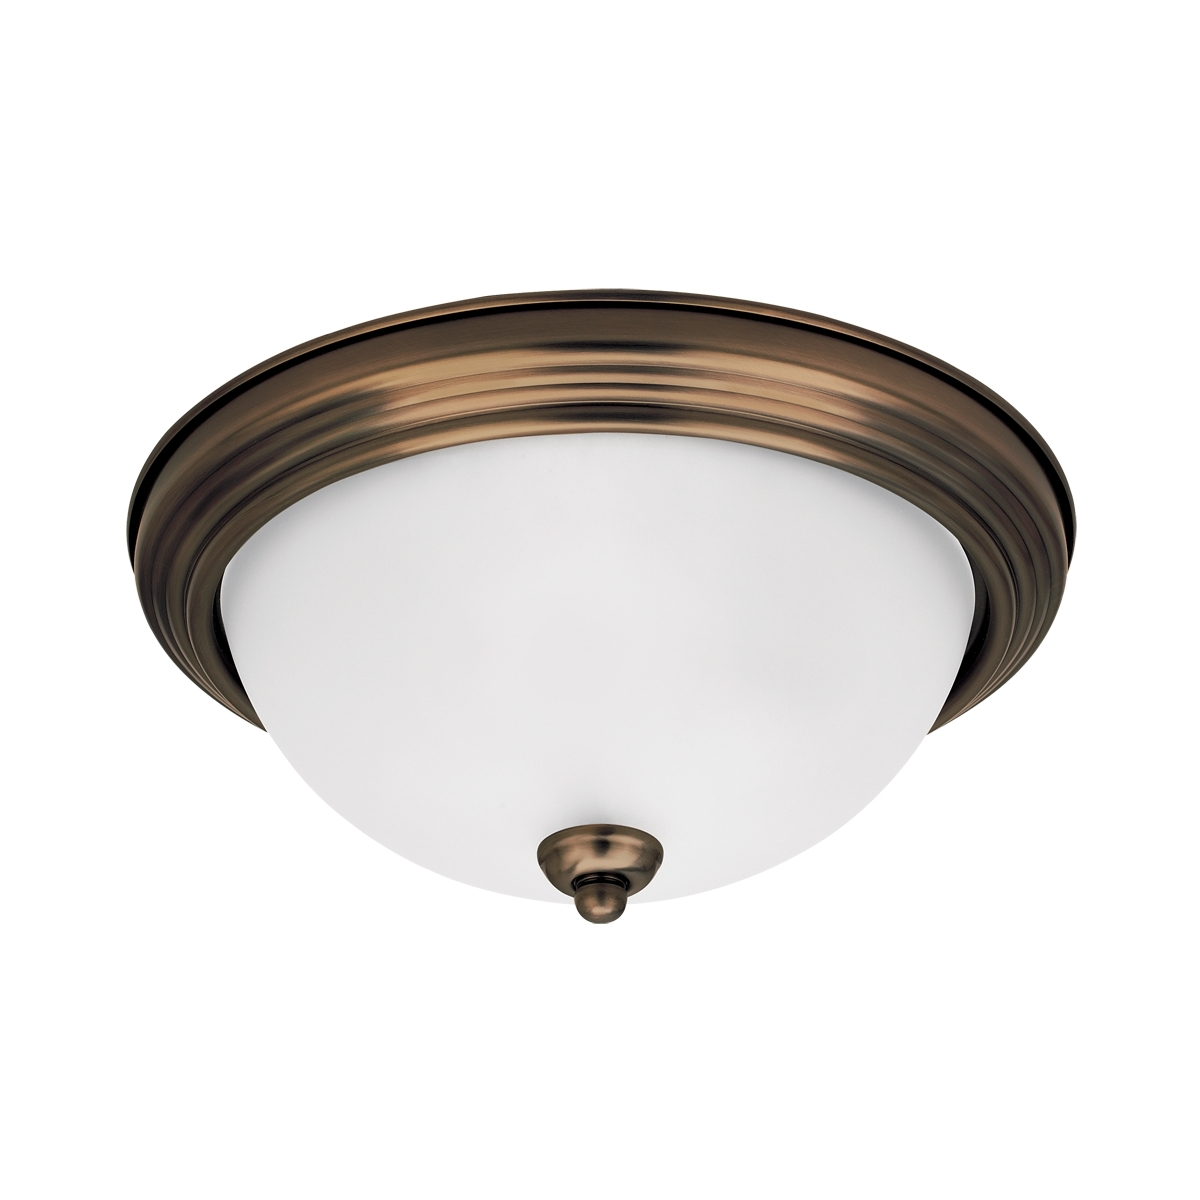 Sea Gull Signature 1 Light Flush Mount in Russet Bronze 79163BLE-829 photo